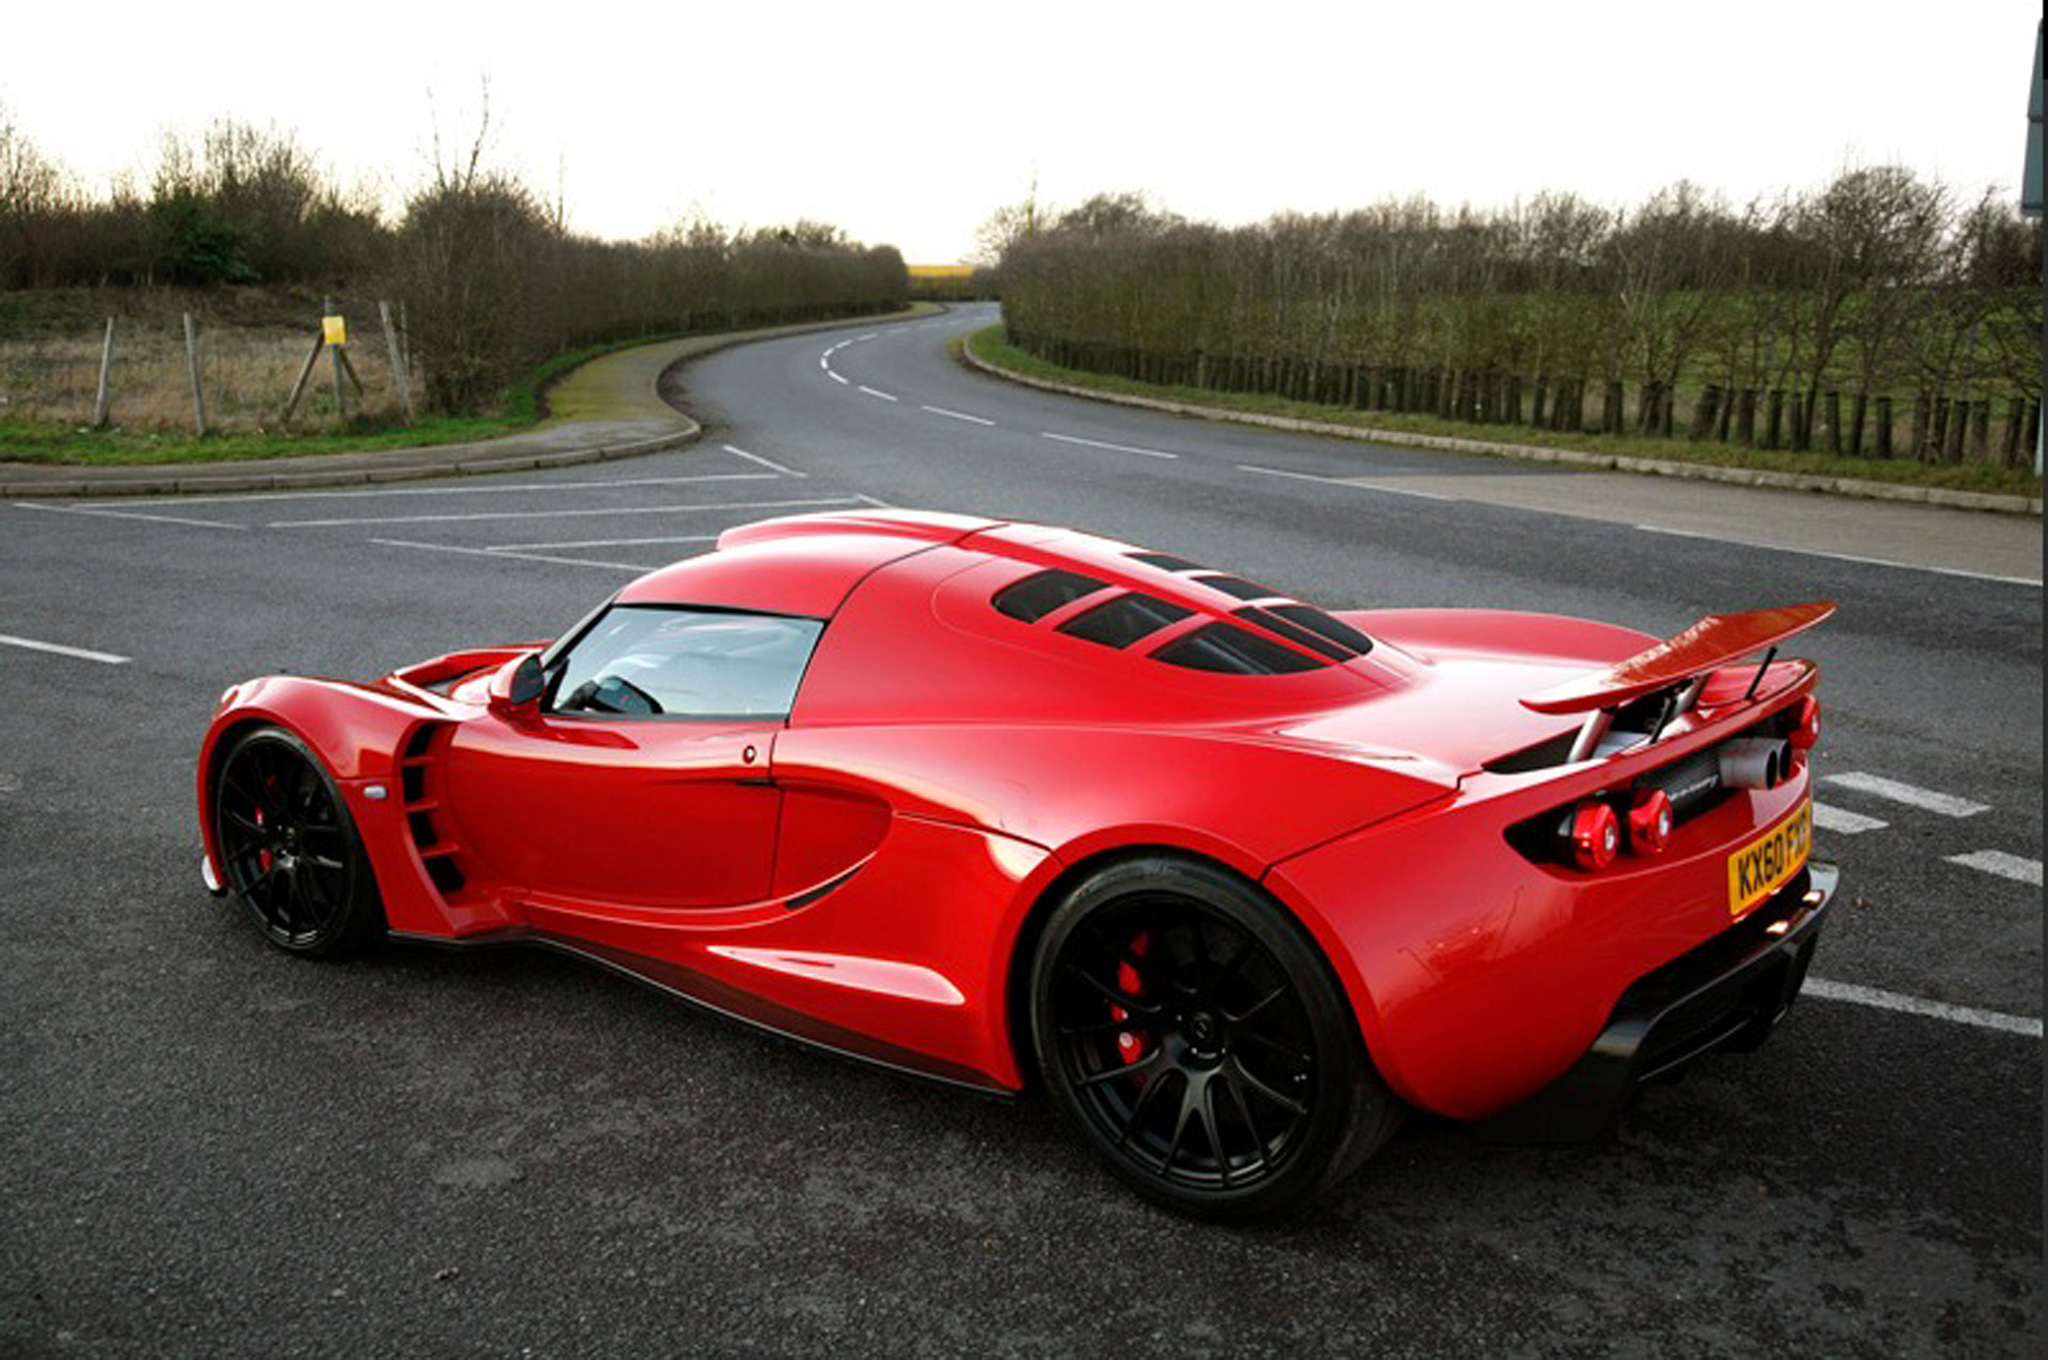 Hennessey Venom Gt The Fastest Supercar In The World